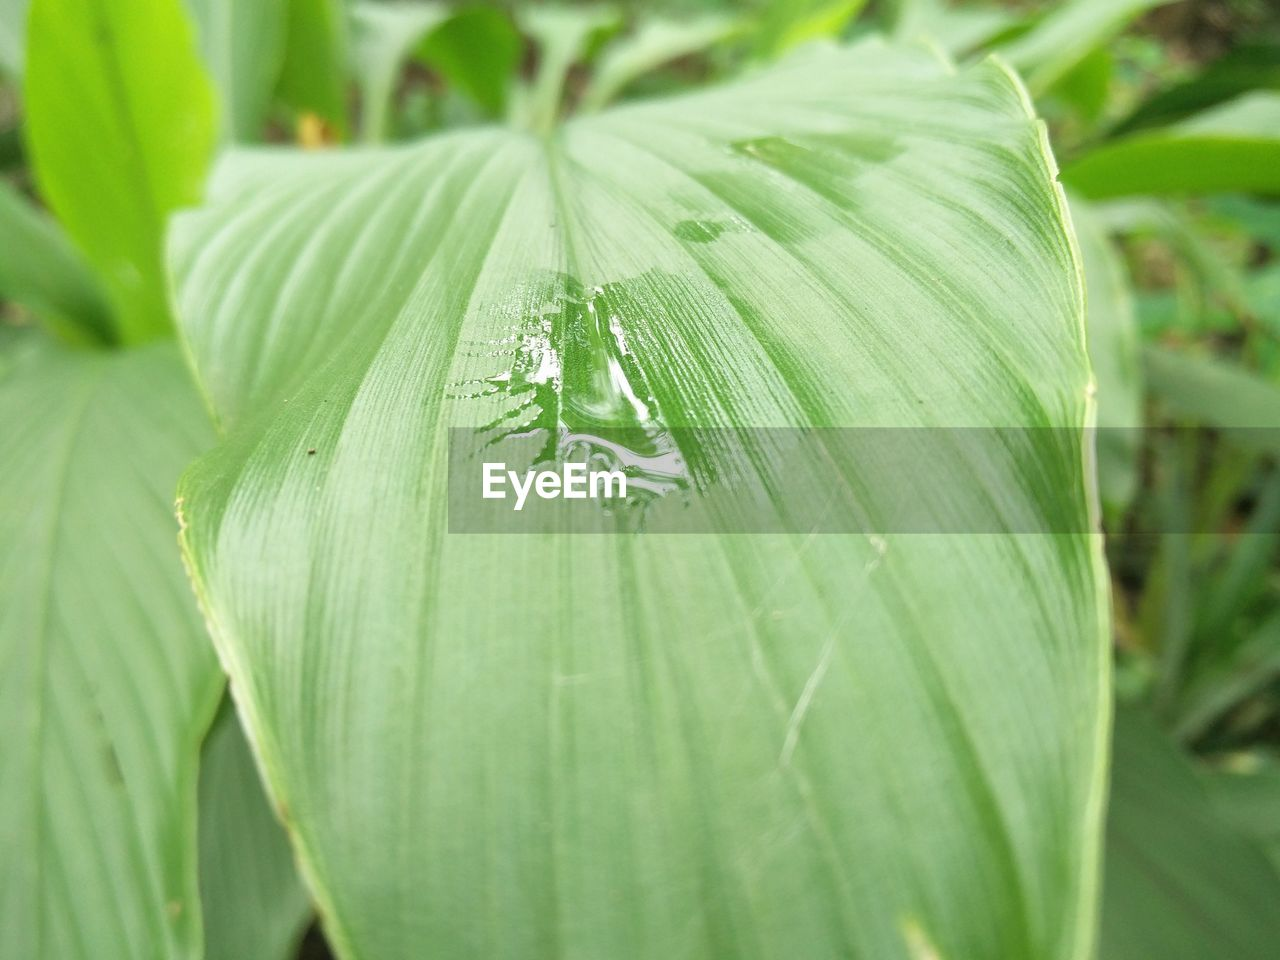 green color, close-up, leaf, plant part, growth, plant, no people, focus on foreground, nature, day, freshness, selective focus, outdoors, beauty in nature, drop, invertebrate, food and drink, wet, insect, leaves